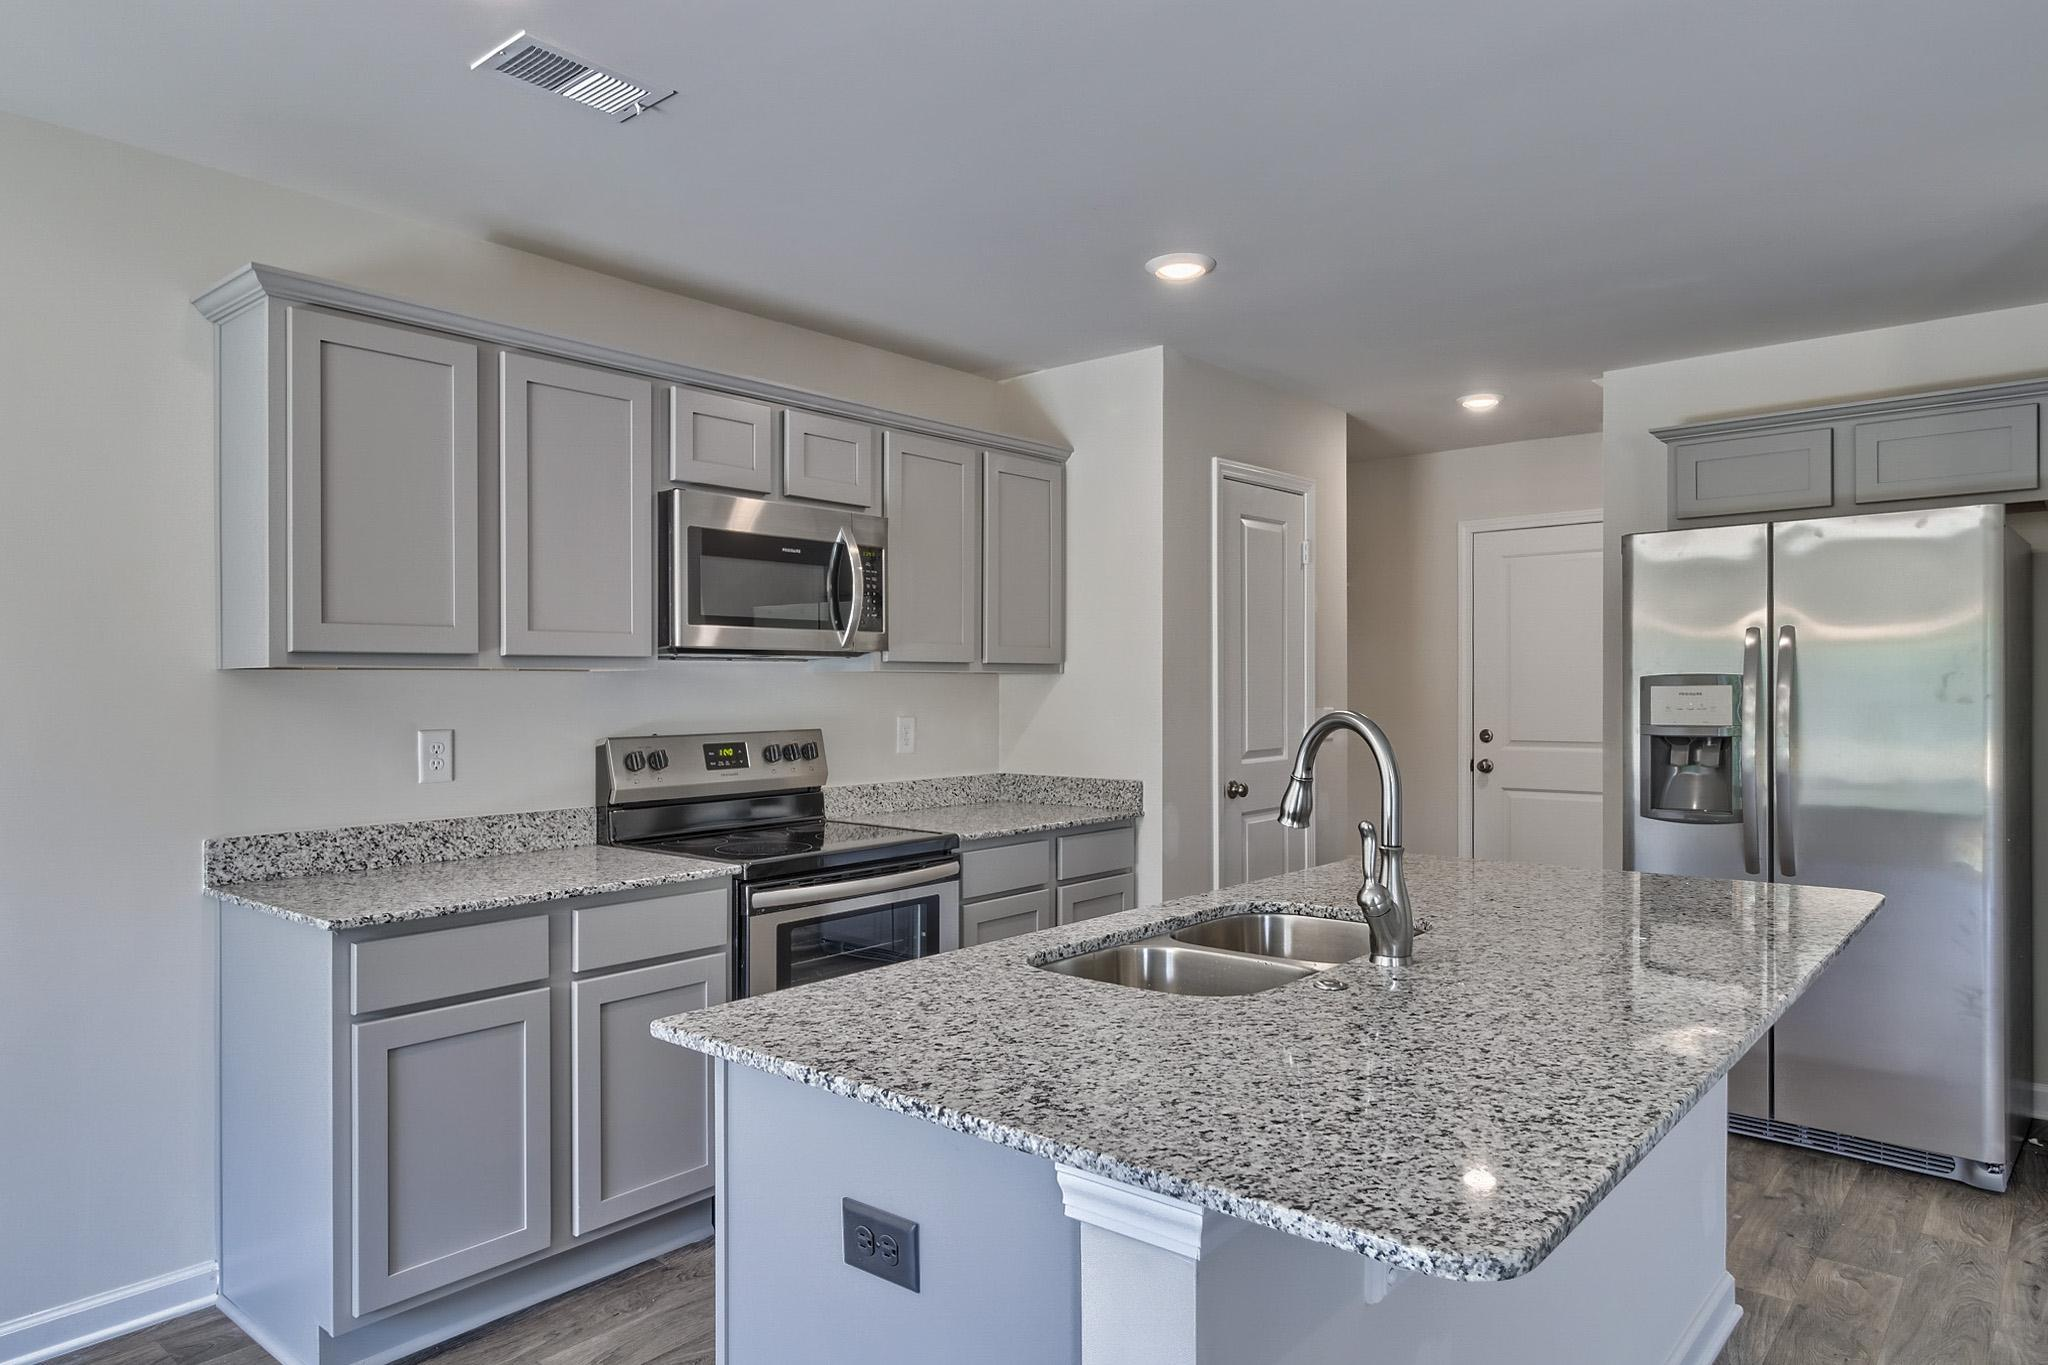 Kitchen featured in the Birch By McGuinn Hybrid Homes in Columbia, SC